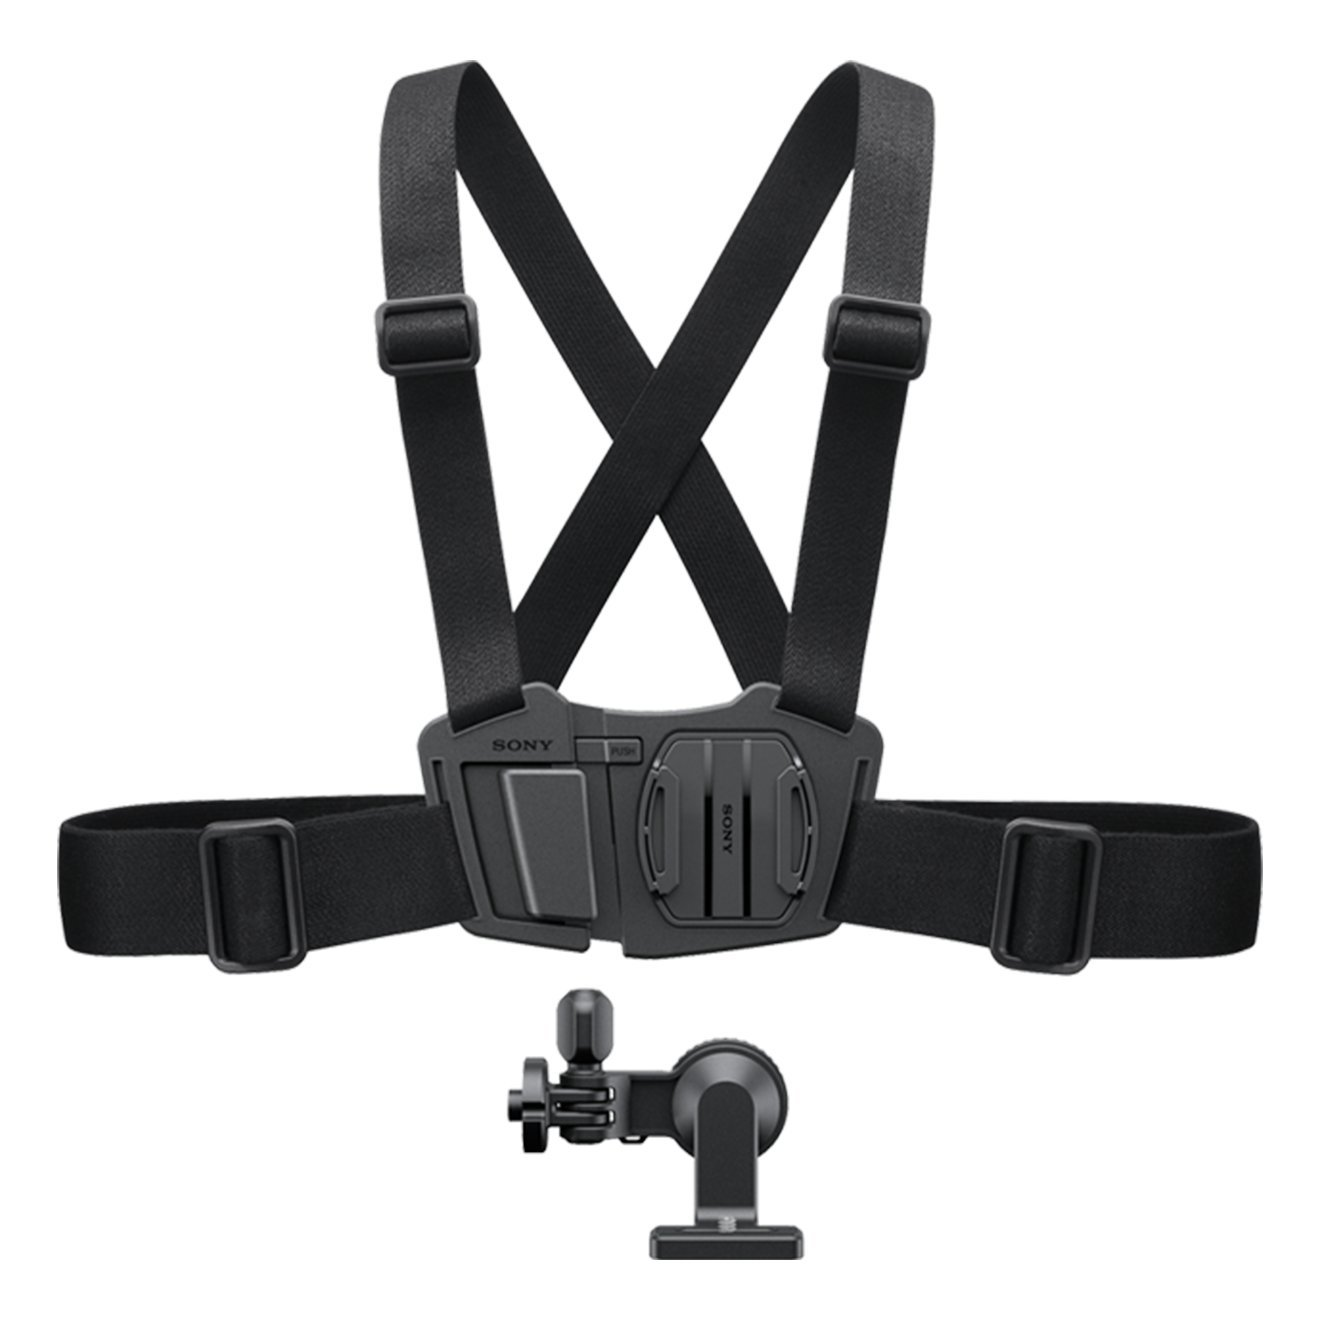 Sony Chest Mount Harness for the Sony Action CameraCustomer reviews and more information